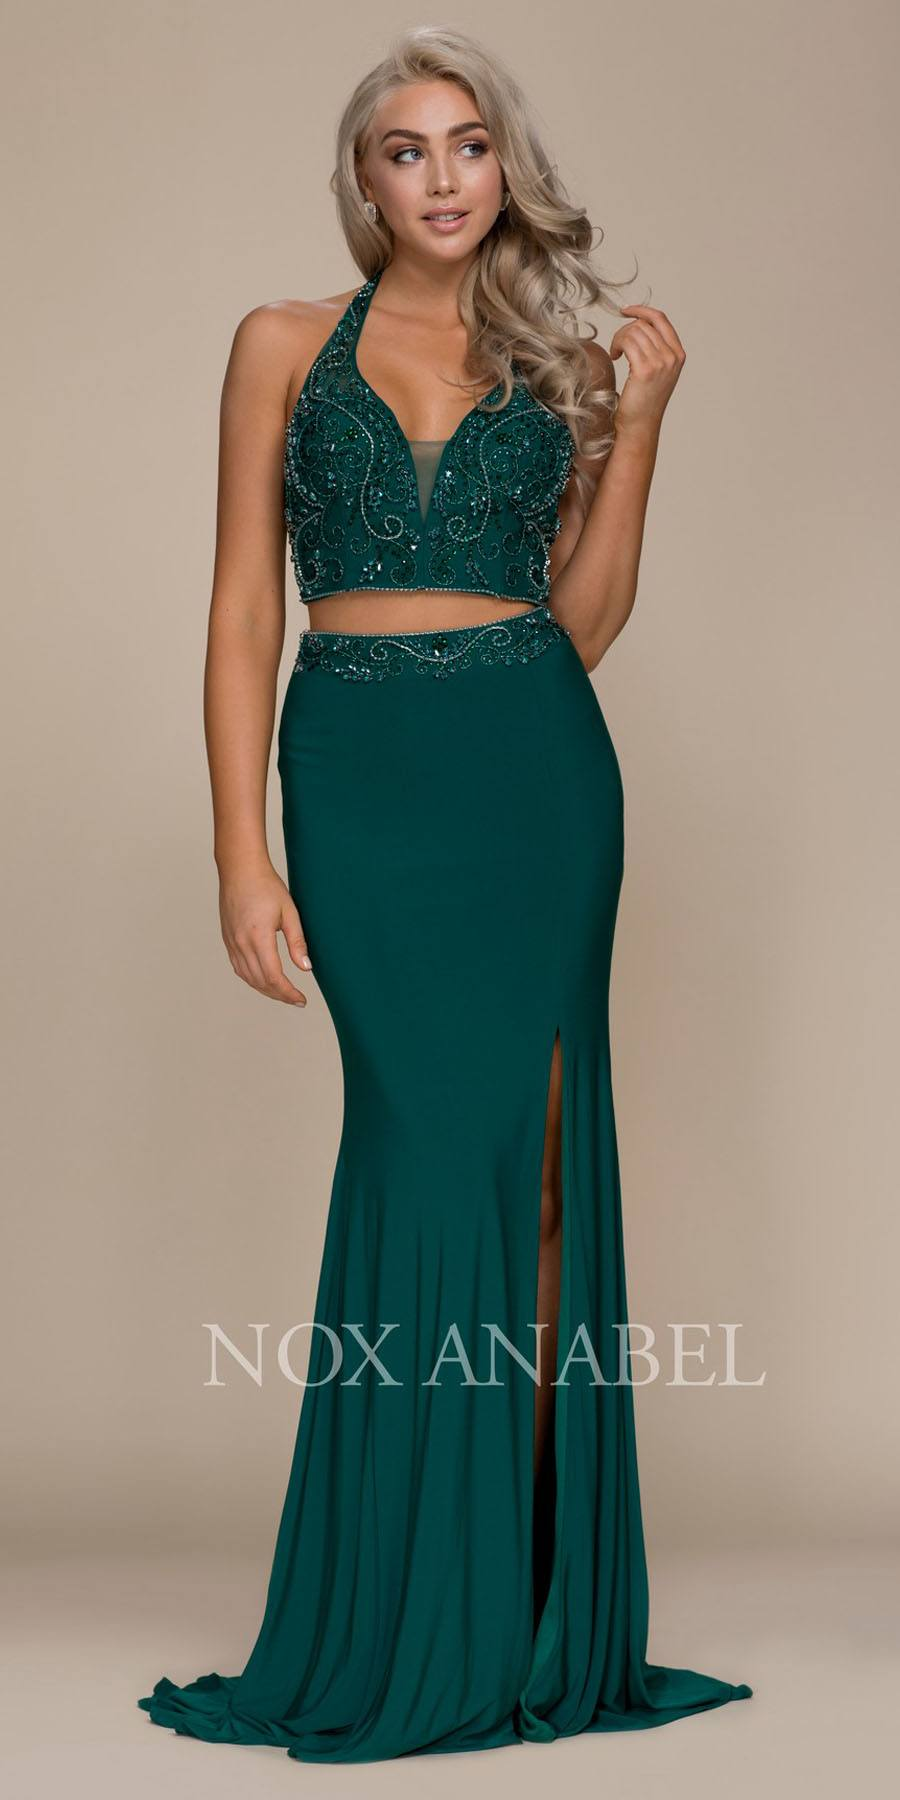 3c91d62953 ... Beaded Top Two Piece Prom Gown with Slit. Tap to expand